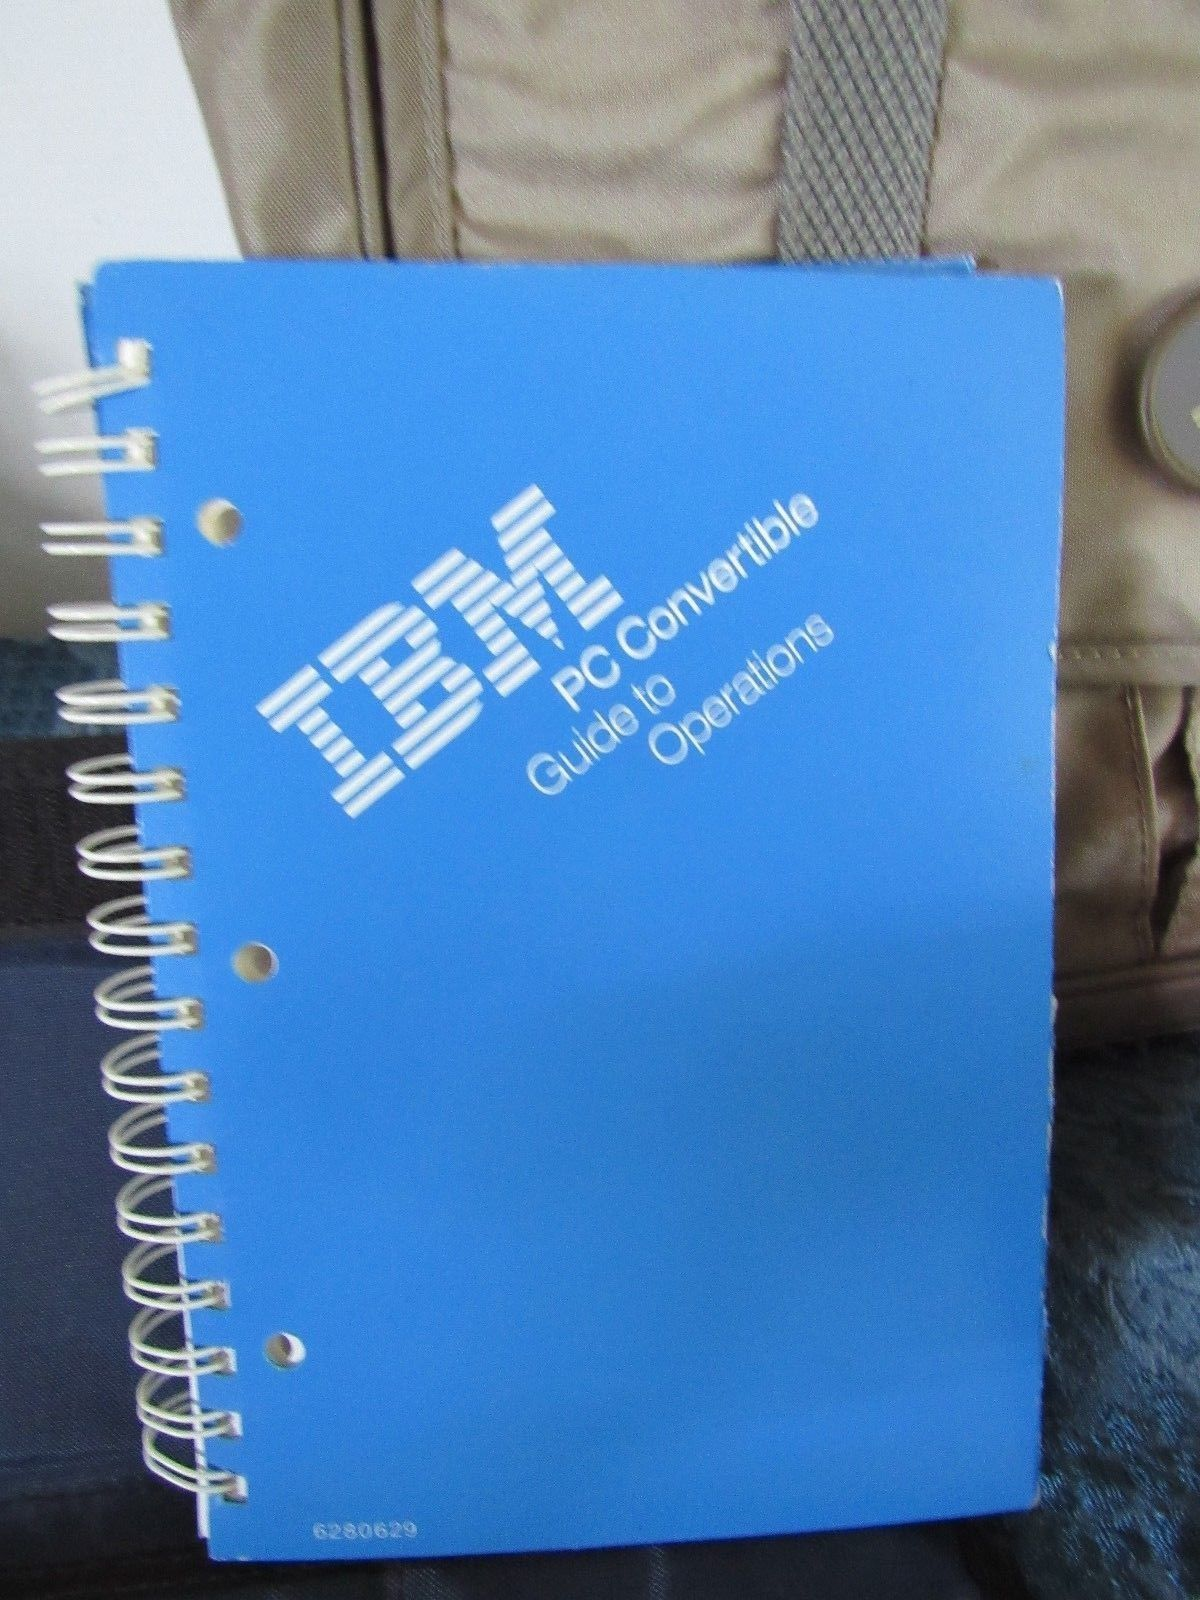 Vtg IBM Laptop PC Convertible Power Supply Carrying Case Disks Powers on